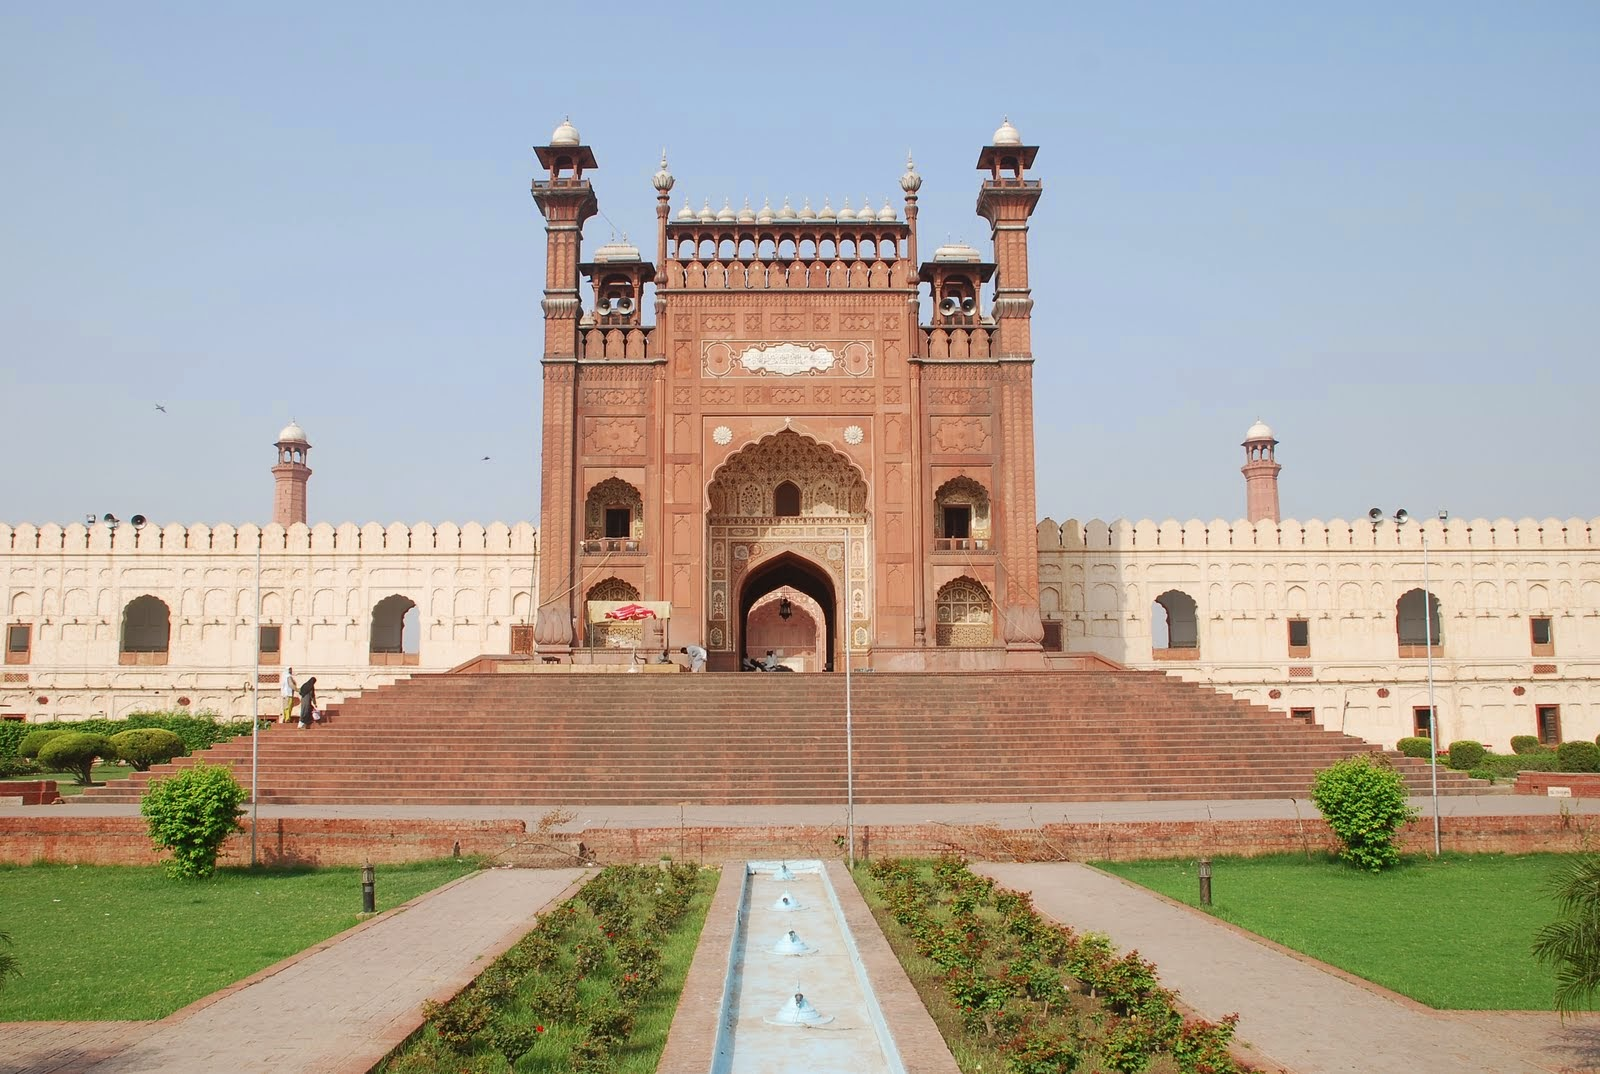 badshahi mosque essay in urdu An essay can have many purposes, but the basic structure is the same no matter what when writing an essay to it may be to argue for a particular point of view or to explain the steps necessary to complete a task.